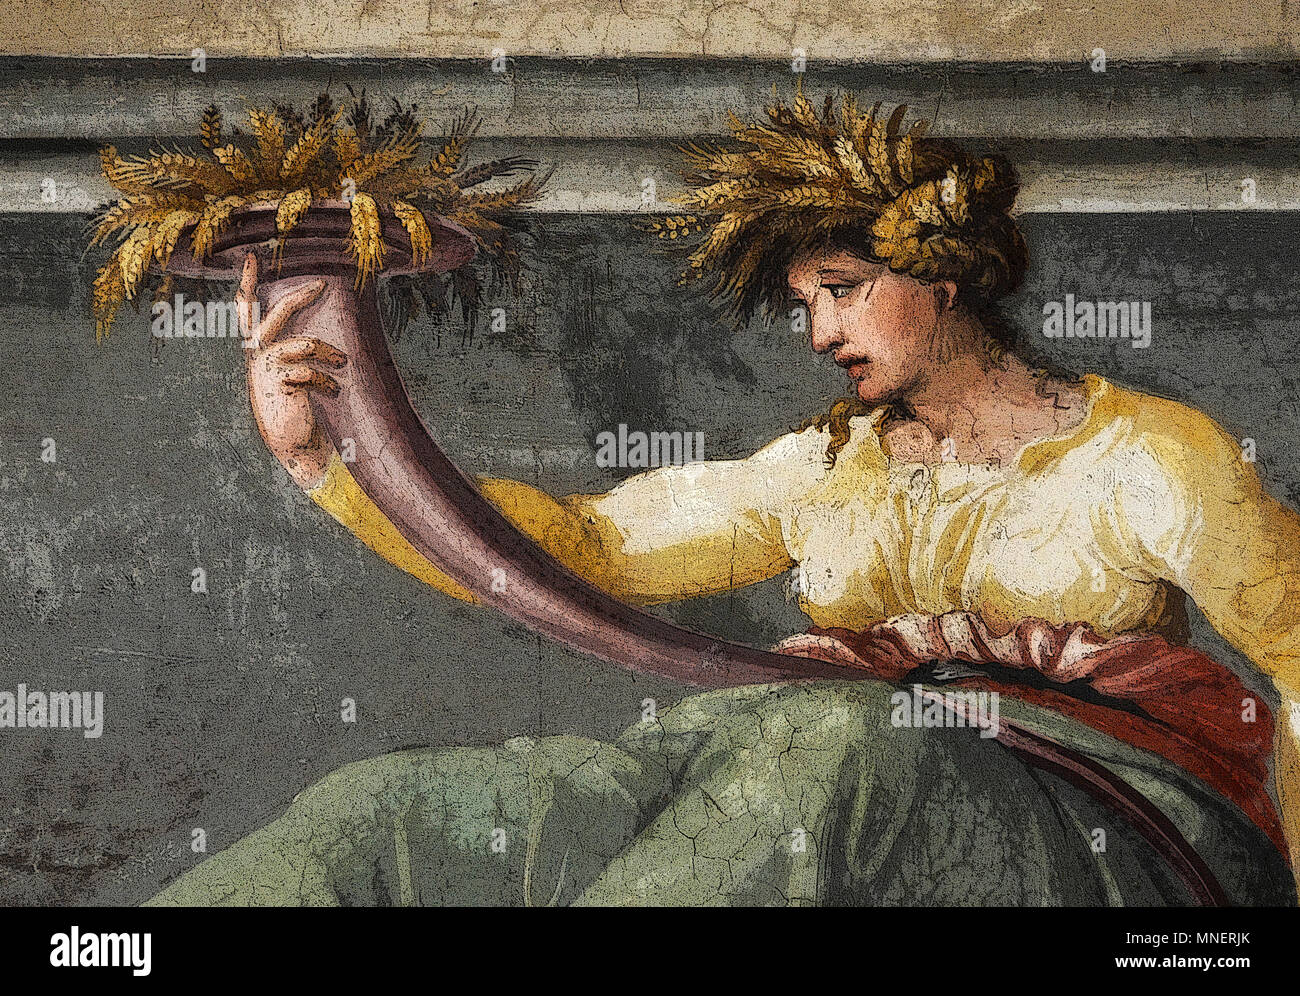 Figure of Ceres holding wheat, Renaissance mythological scene in the Frieze of the Hall of Perspectives (rendered in PS), by  Peruzzi, Rome, Italy - Stock Image